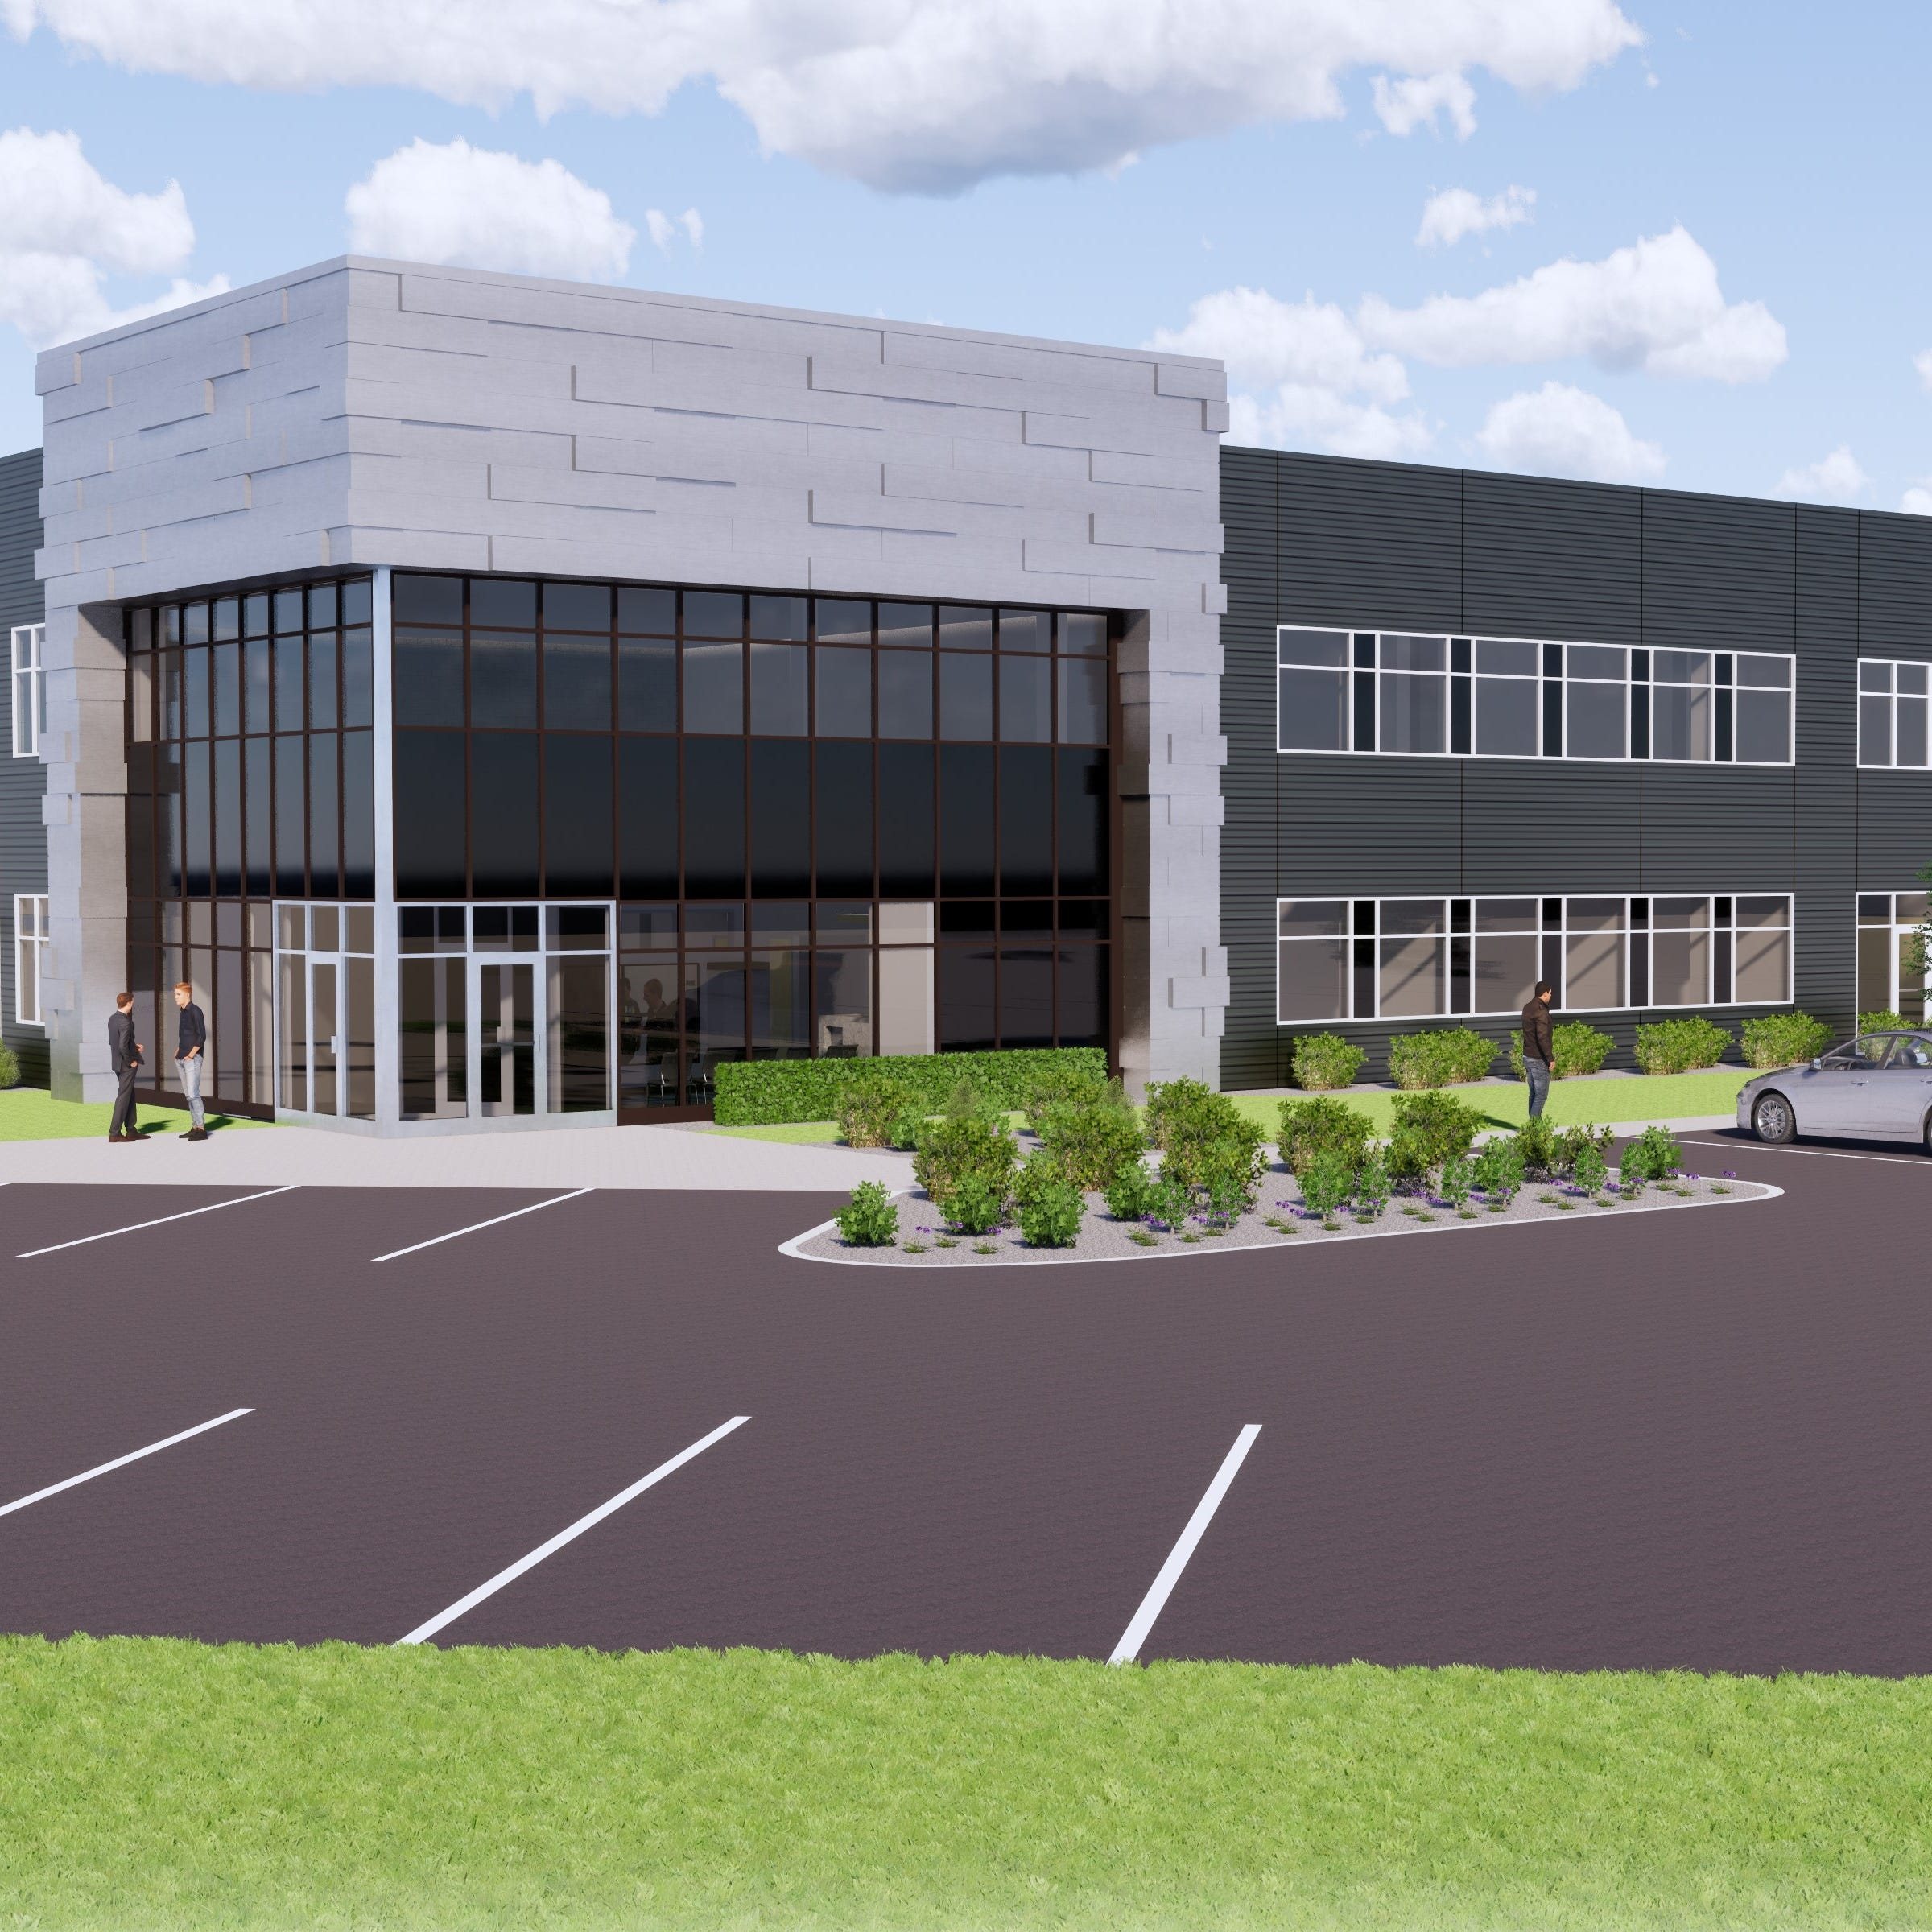 Marten Machining to build new Stevens Point headquarters, hopes to double workforce